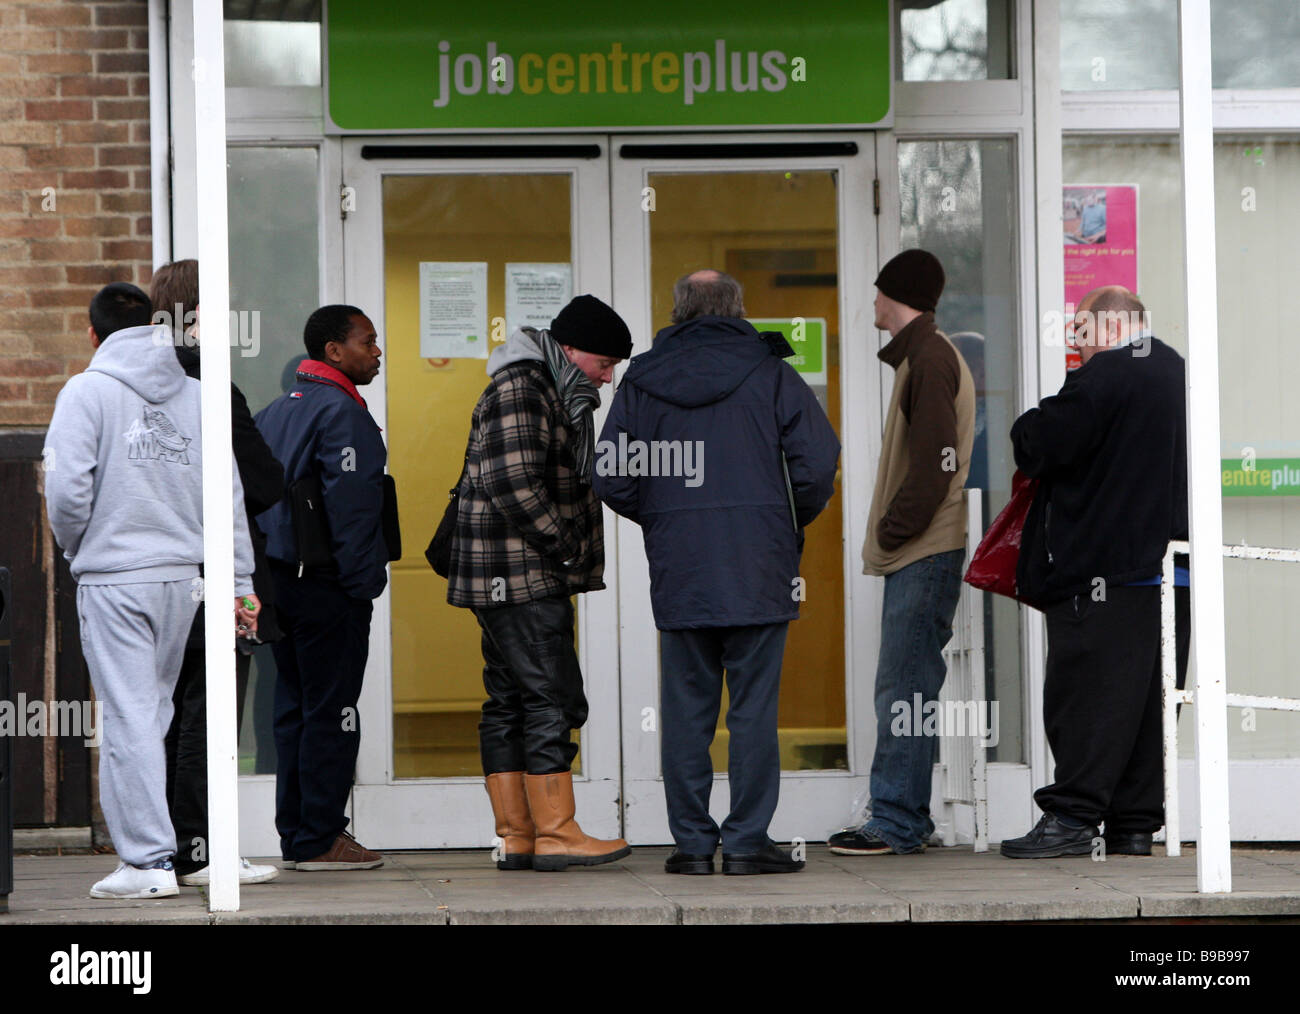 UNEMPLOYED QUEUEING JOB CENTRE PLUS FOR JOBS - Stock Image